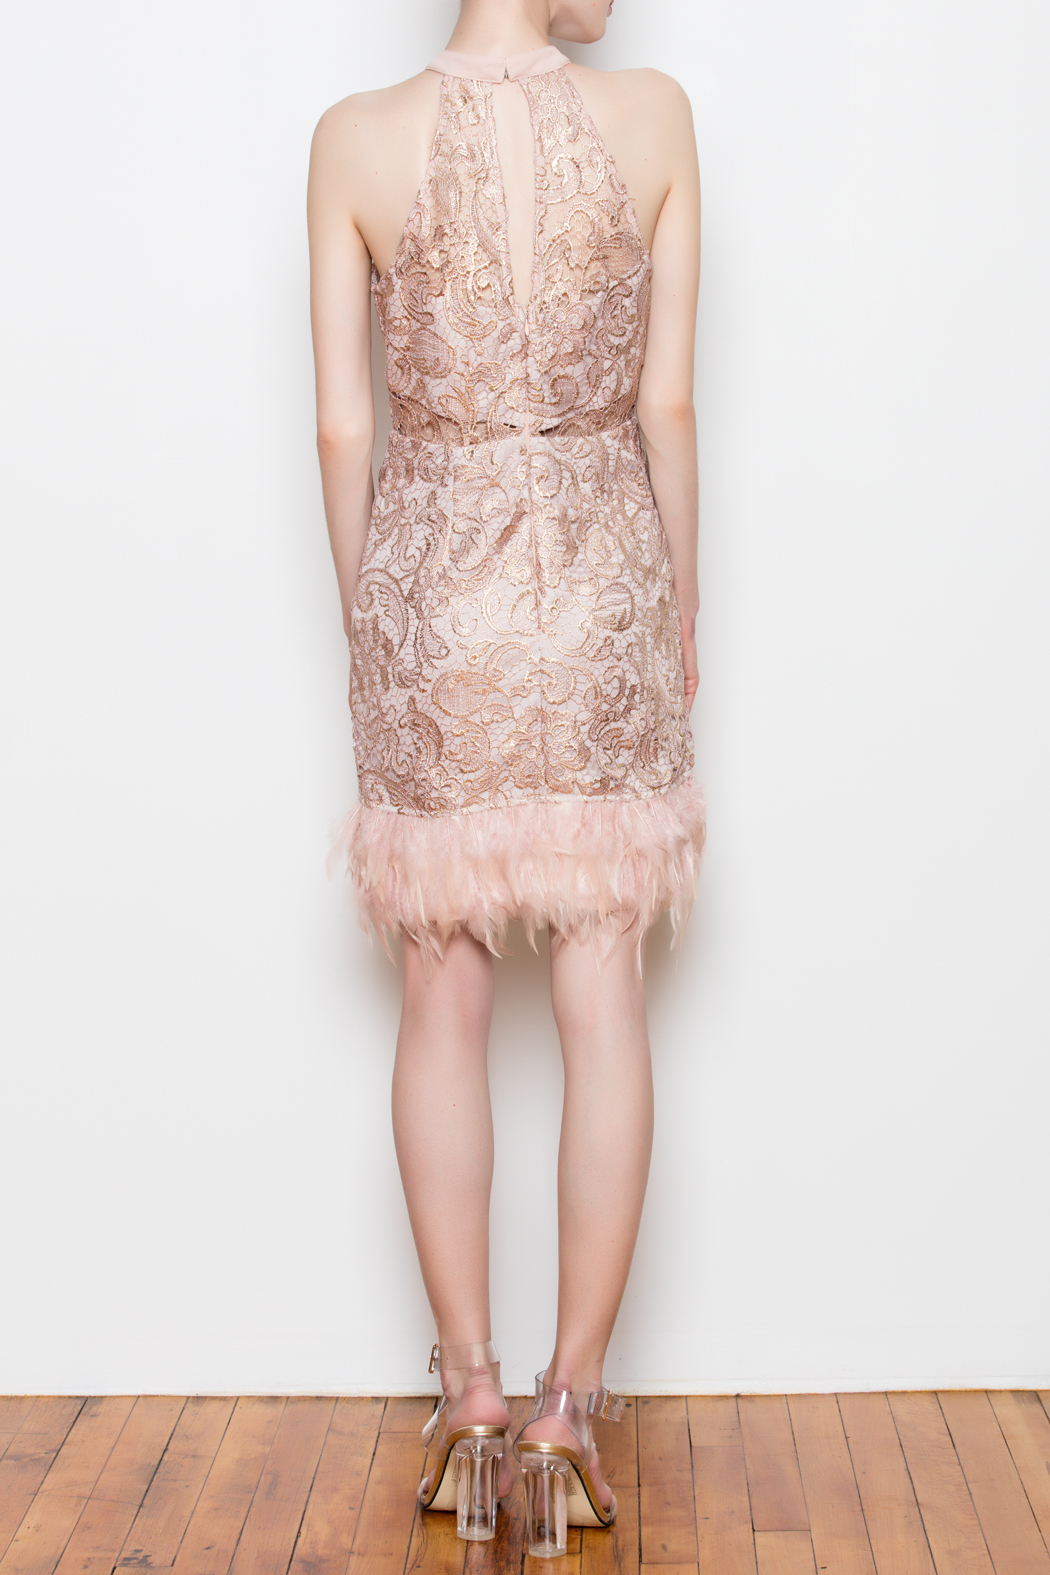 Minuet Feather Trim Dress from Louisiana by Bella Bella — Shoptiques